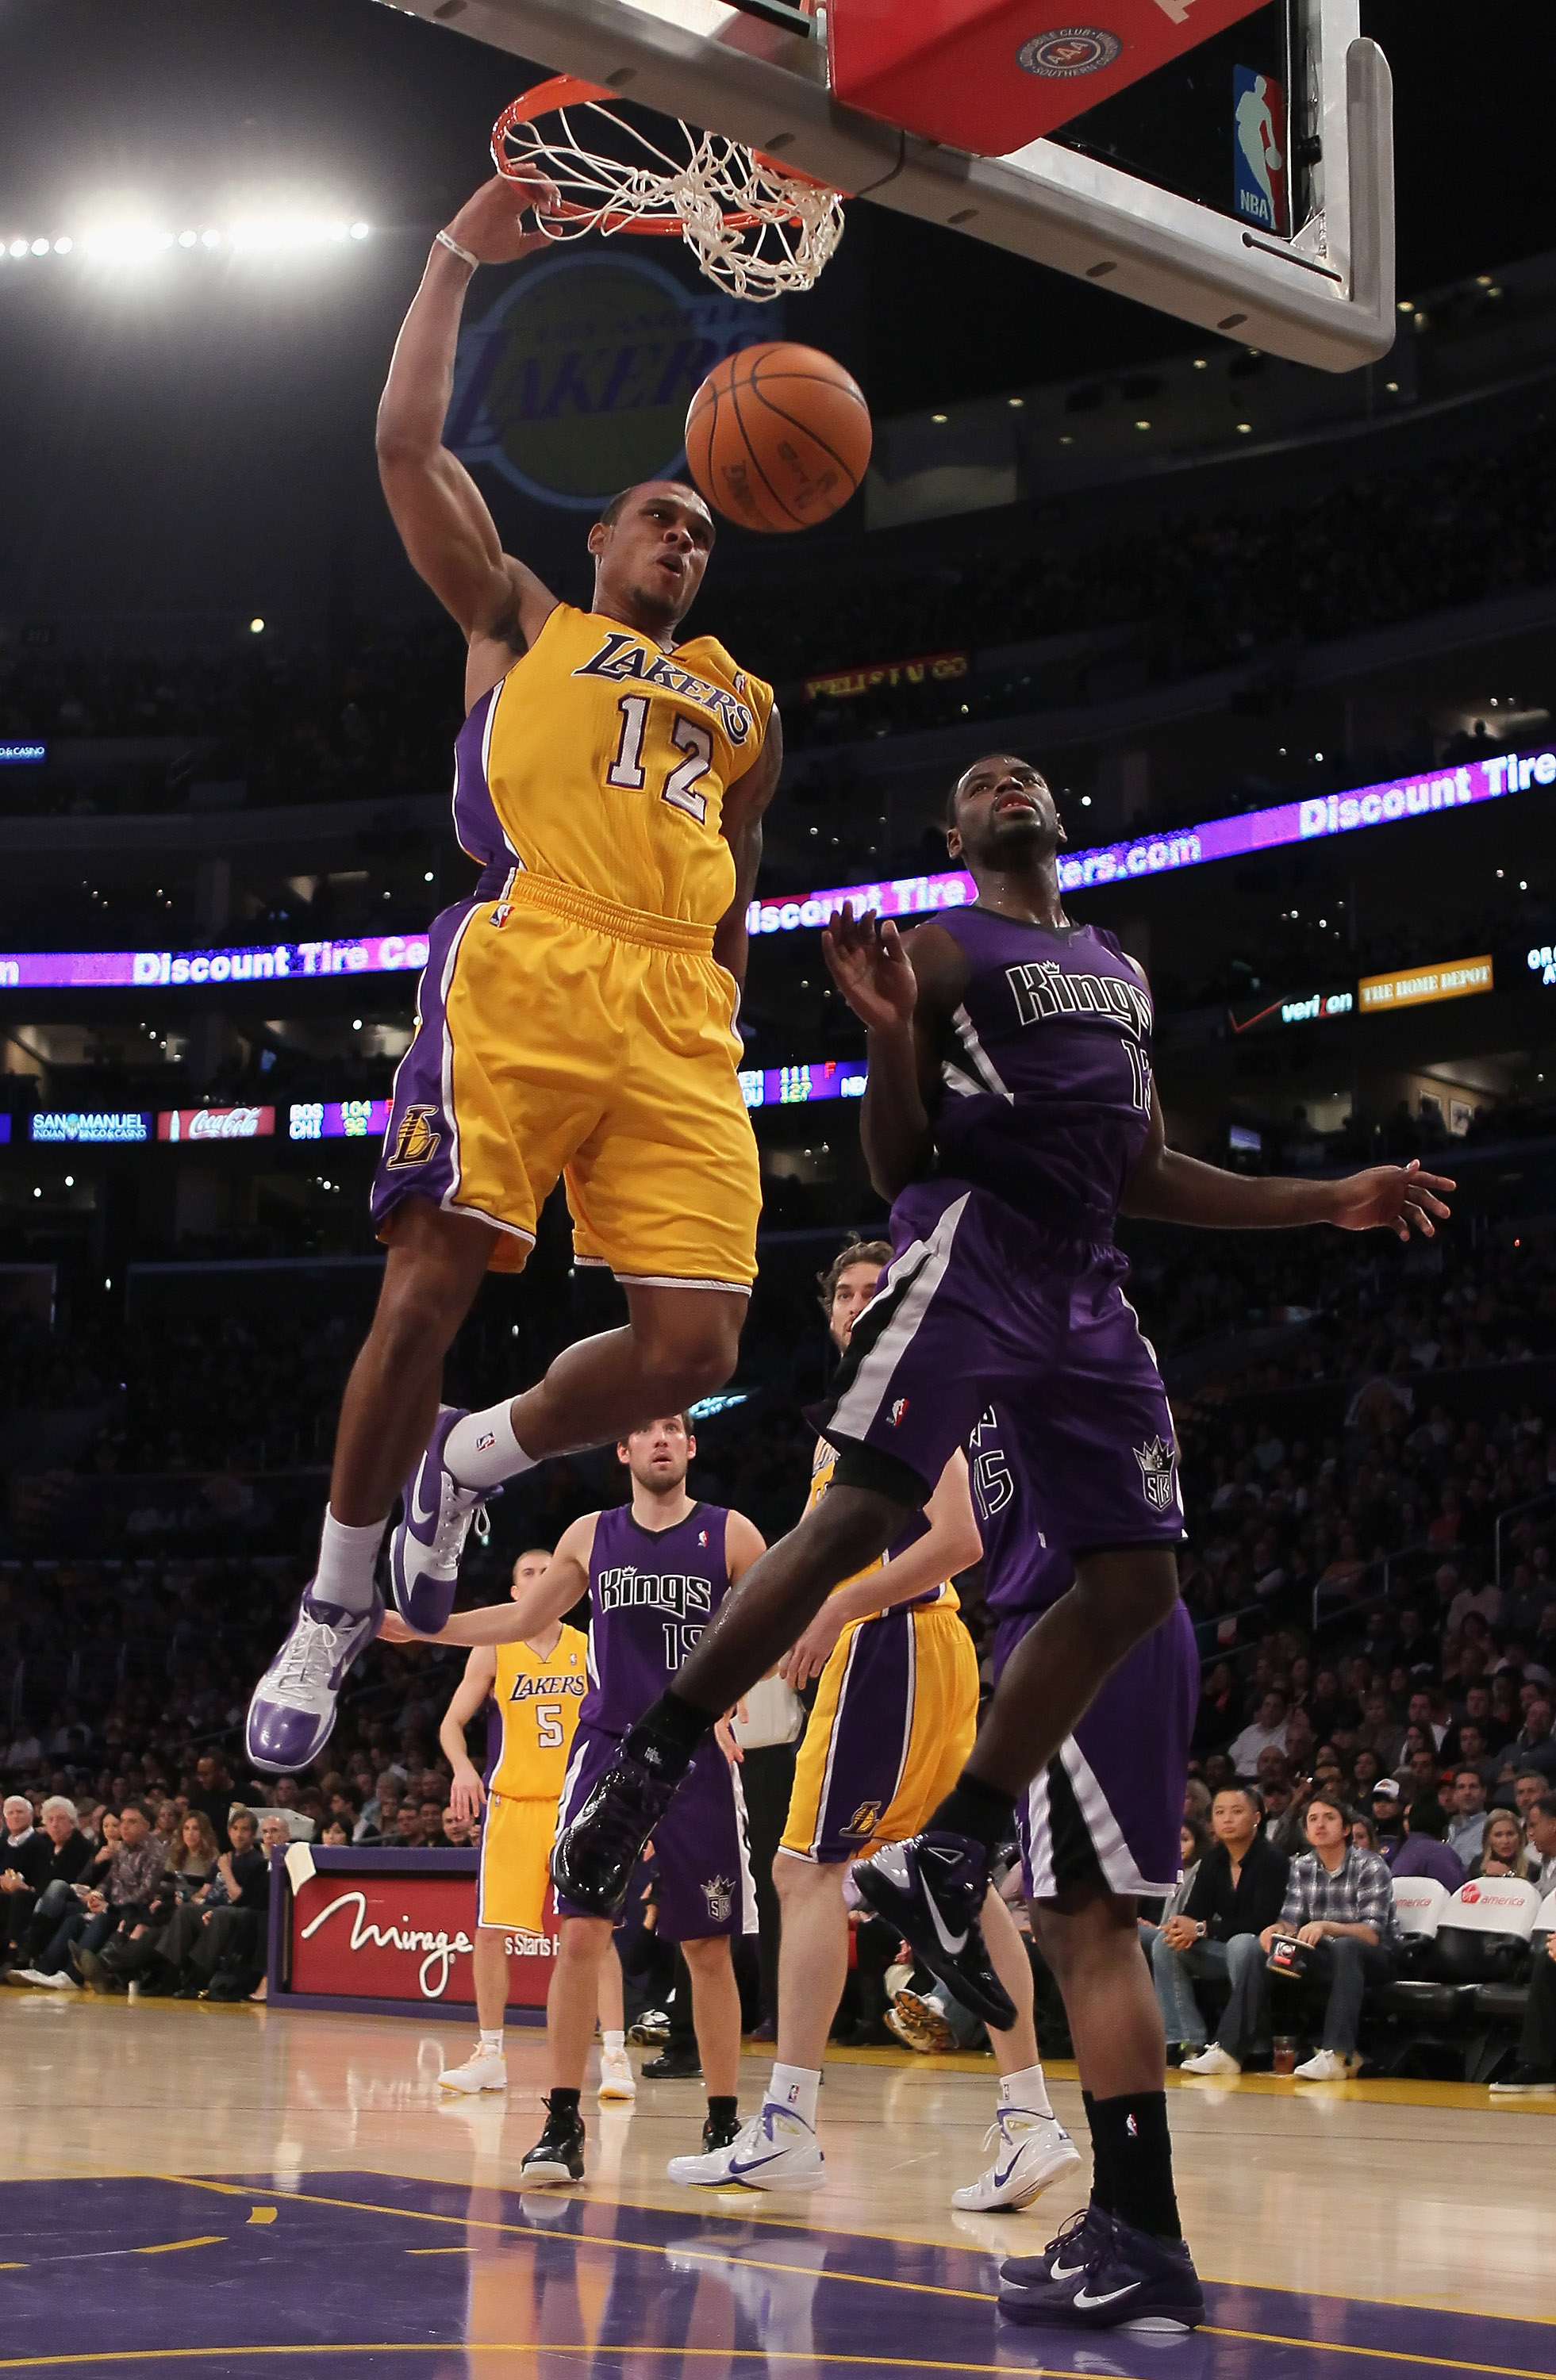 LOS ANGELES, CA - DECEMBER 03:  Shannon Brown #12 of the Los Angeles Lakers drives to the basket past Tyreke Evans #13 of the Sacramento Kings for a dunk during the first half at Staples Center on December 3, 2010 in Los Angeles, California. NOTE TO USER: